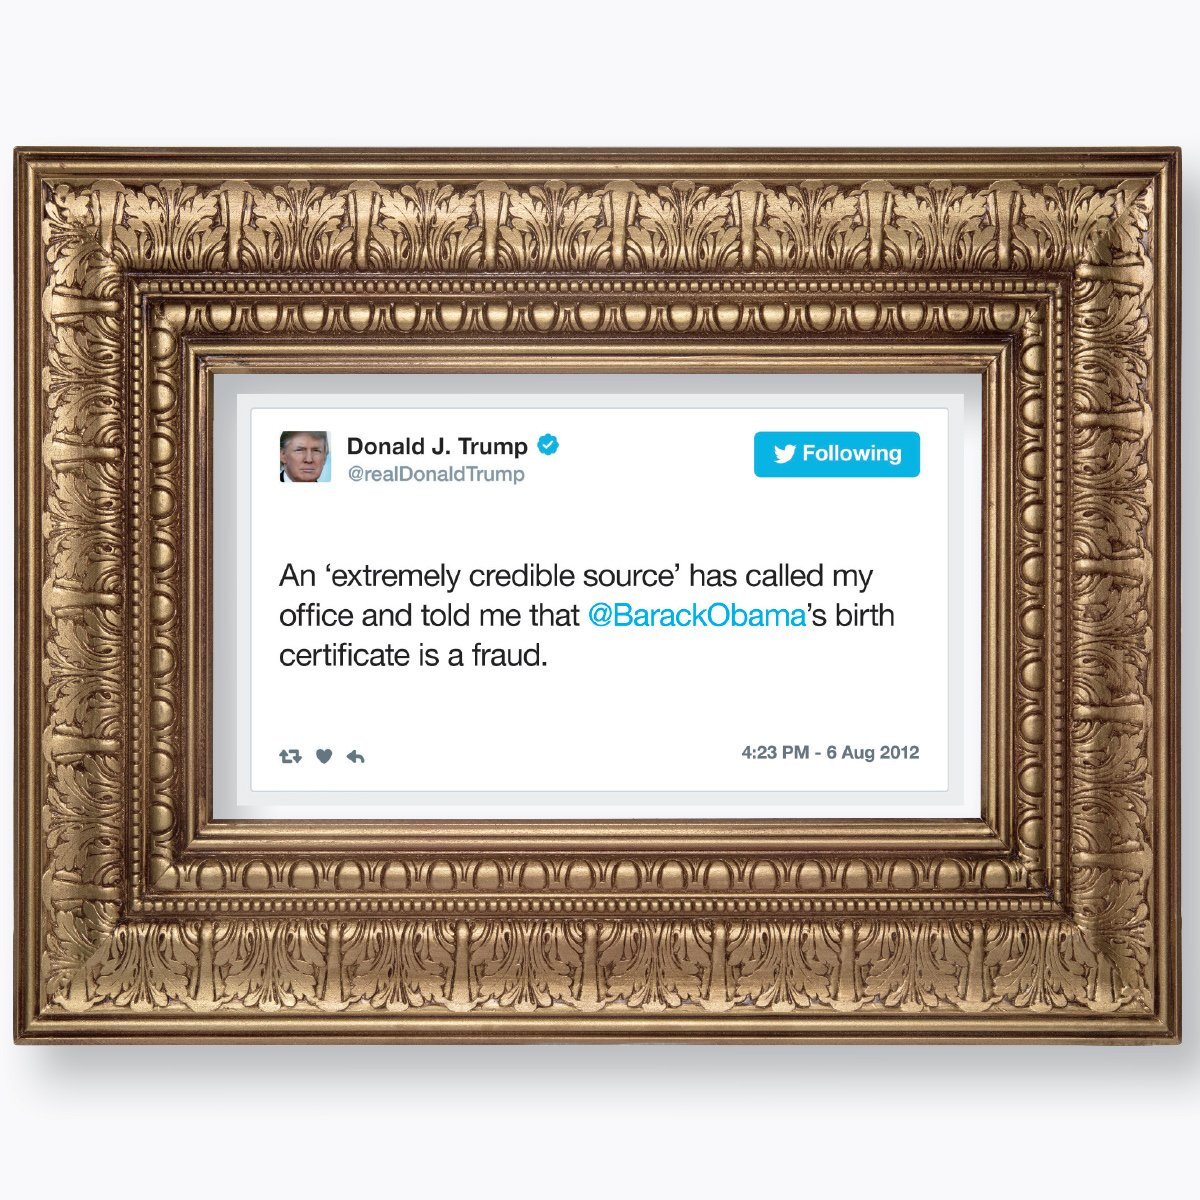 The Daily Show On Twitter In Honor Of Obama S Trip To Kenya This Week We Present Perhaps Trump S Most Critically Acclaimed Twitter Masterpiece Featured In The Donald J Trump Presidential Twitter Library